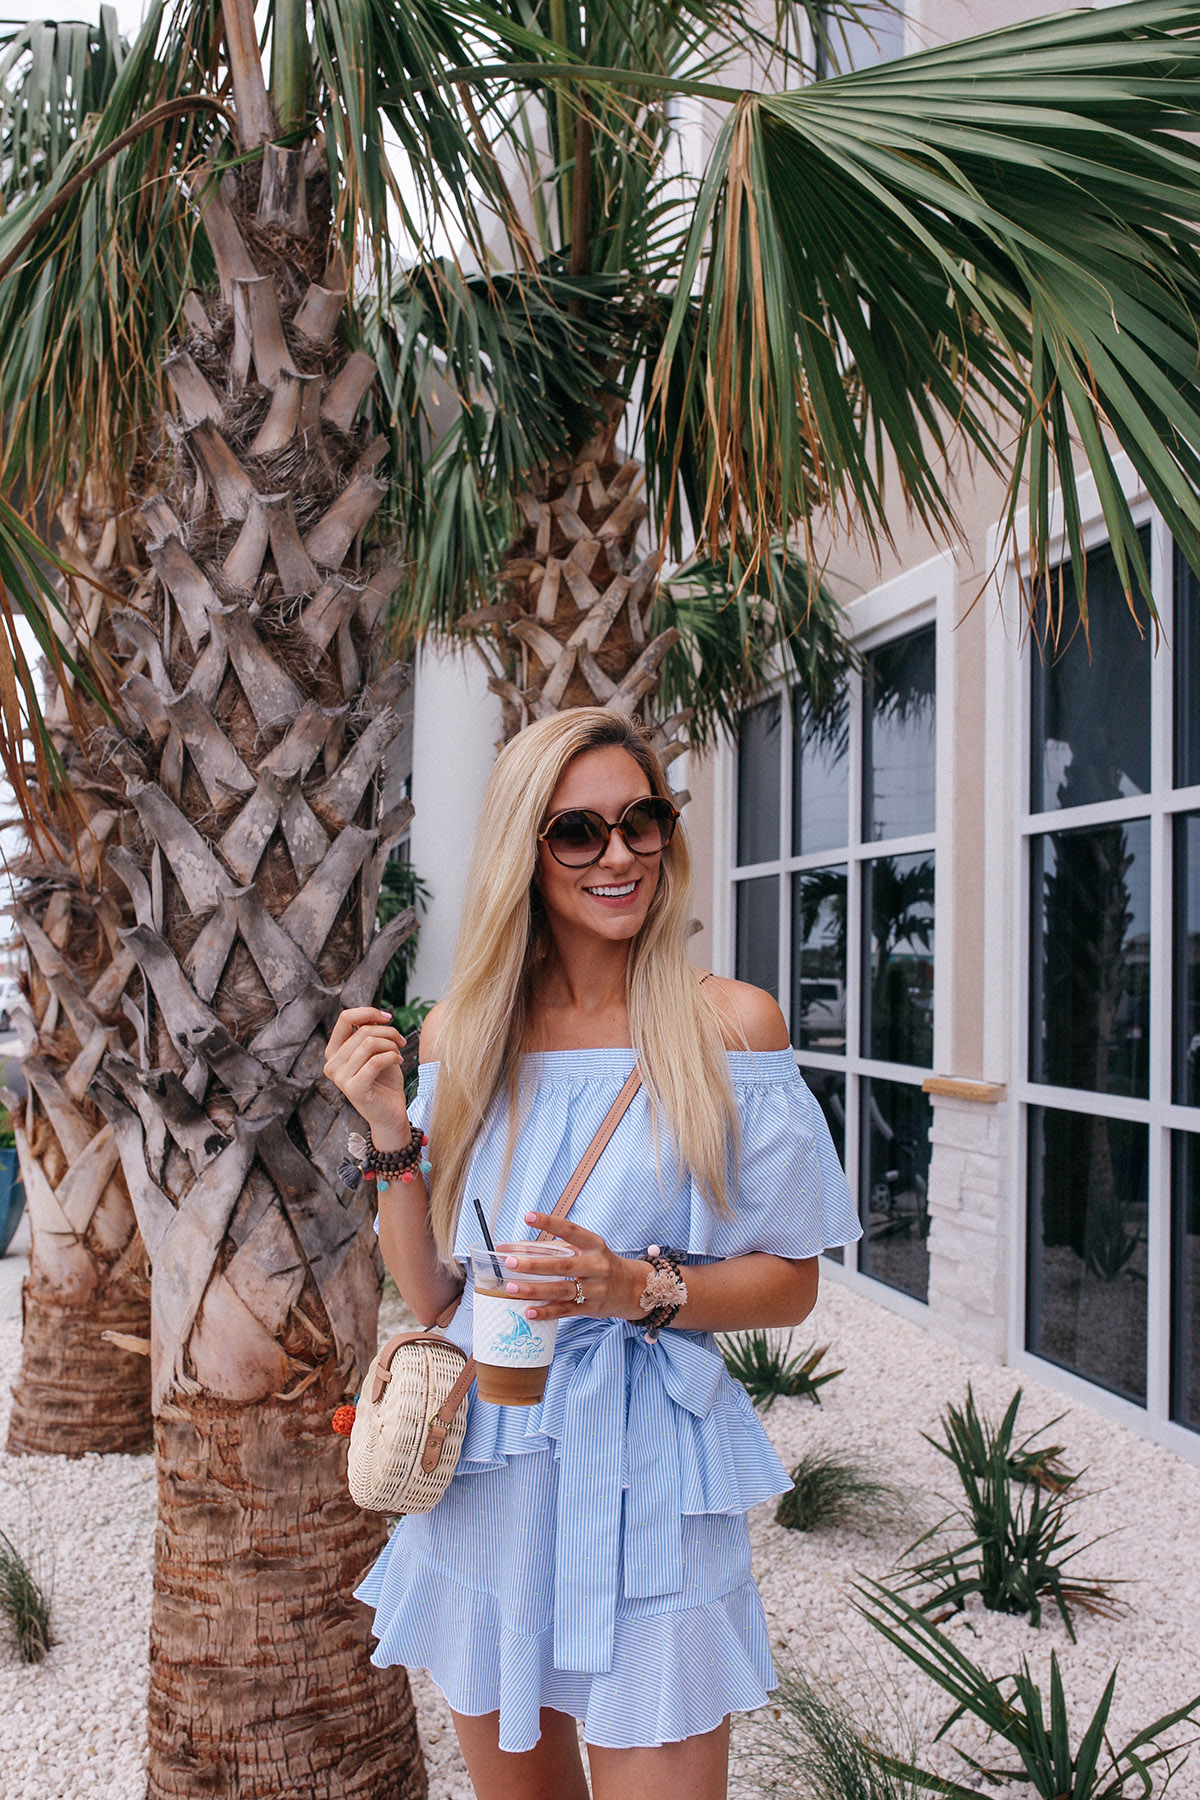 Blue Seersucker Off The Shoulder Dress | Orange Beach Travel Guide | Where To Eat